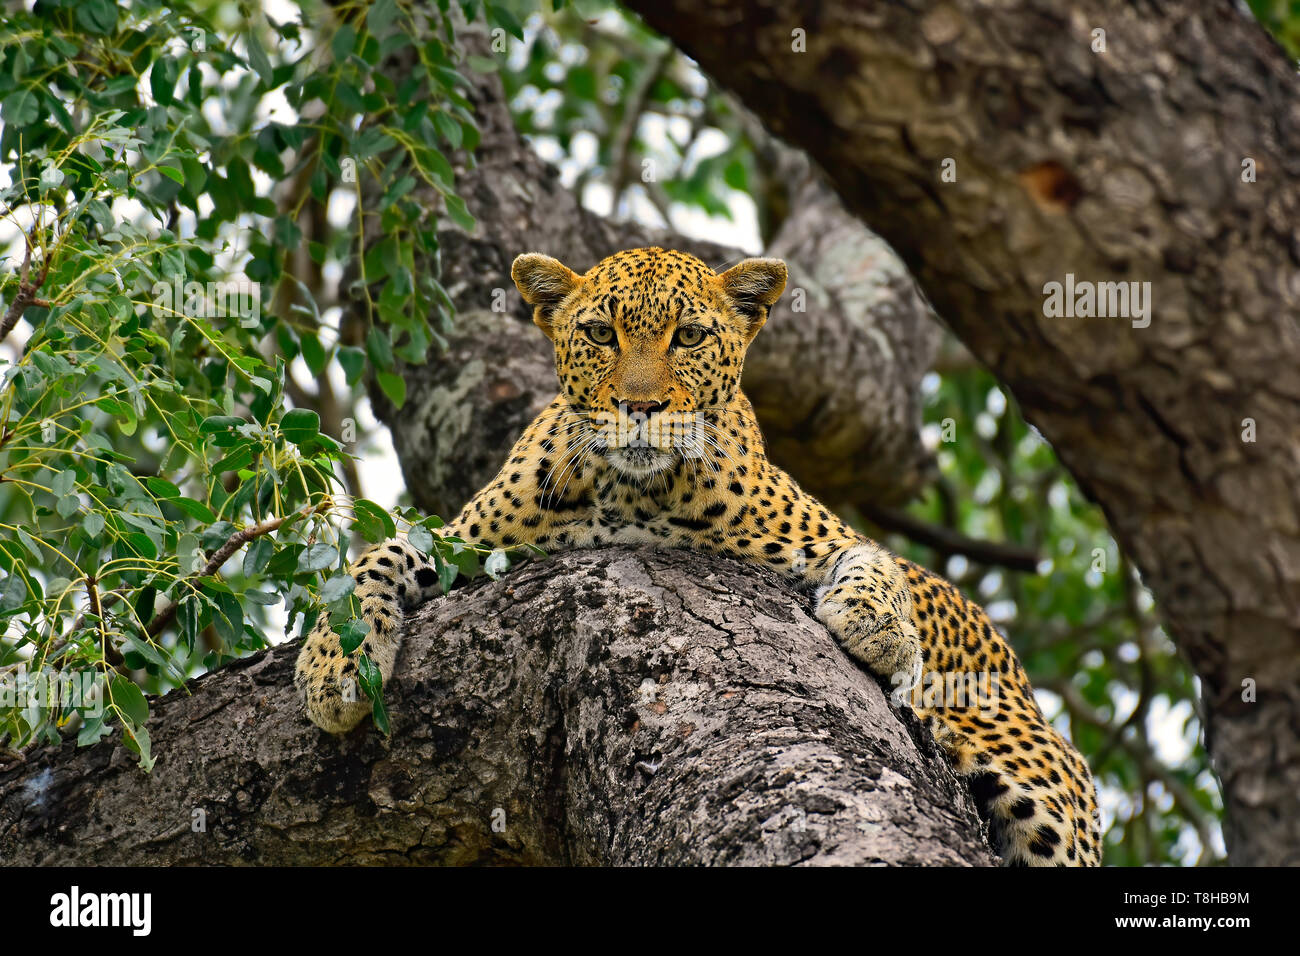 Inquisitive Leopard Panthera Pardus resting in tree Kruger National Park, South Africa - Stock Image